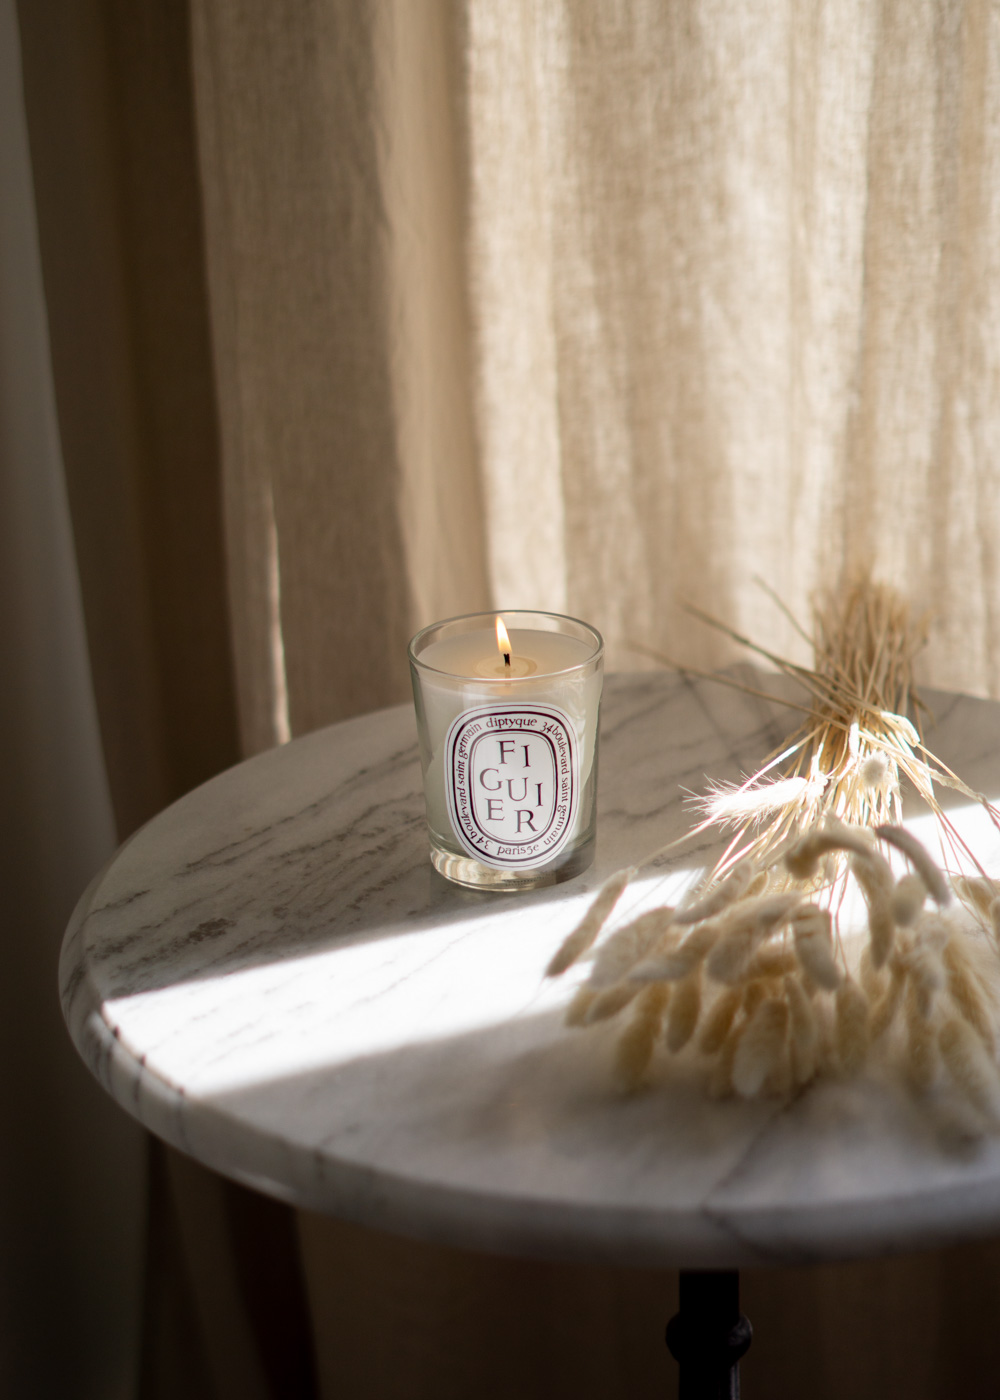 Diptyque Paris Candle Perfume Parfum Fragrance Beauty Product Photography French Aesthetic Style Rg Daily Rebecca Goddard 28 Rg Daily